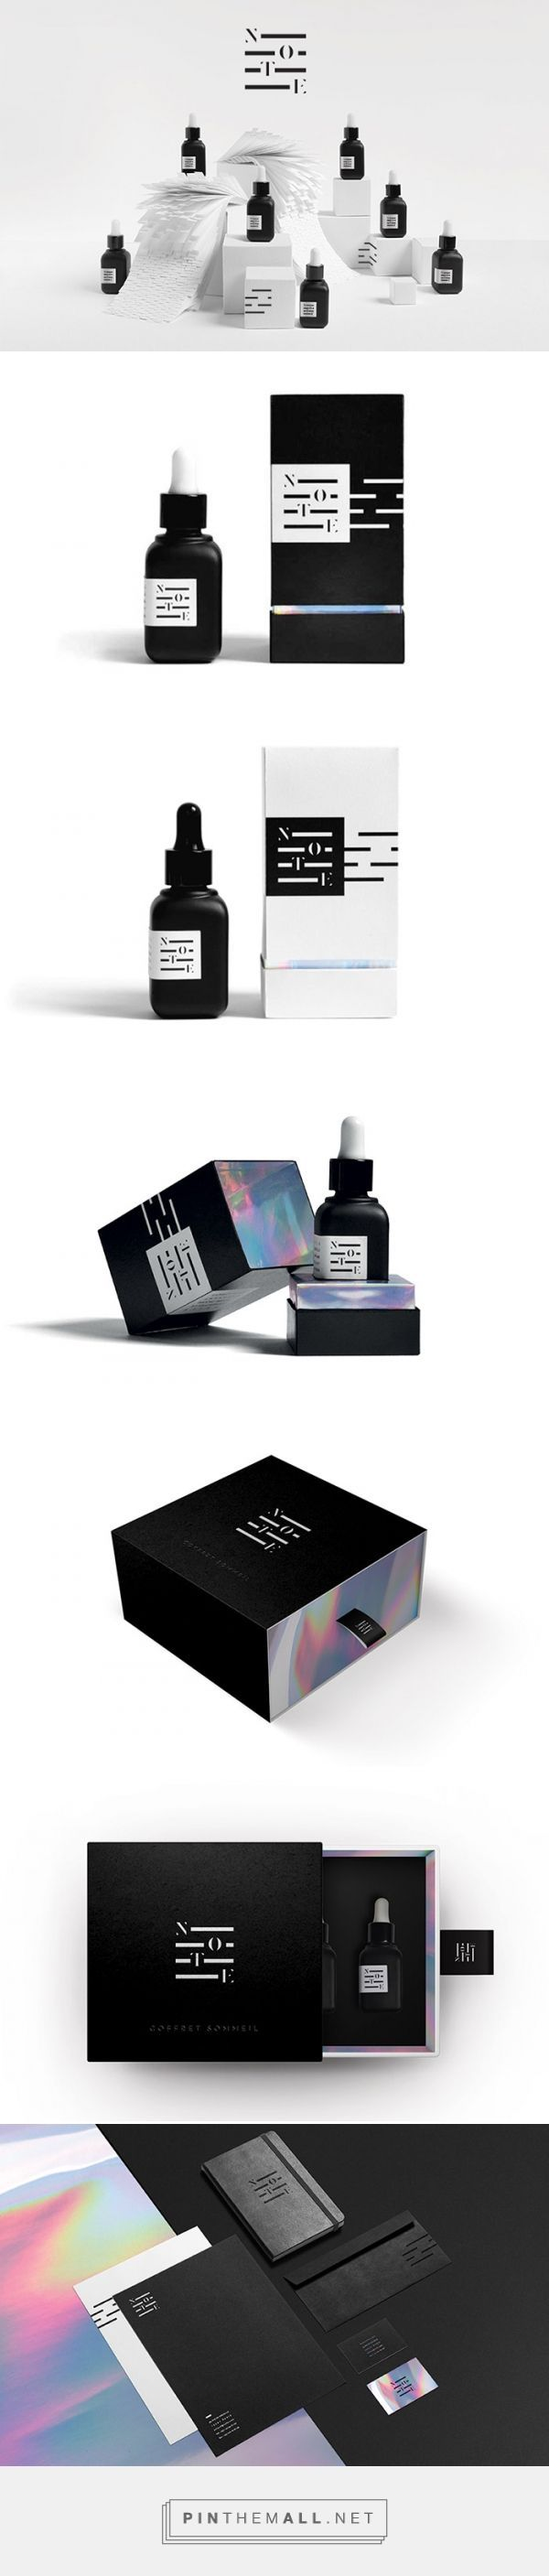 N O T E - aromatherapy - designed by Sophie Pulat